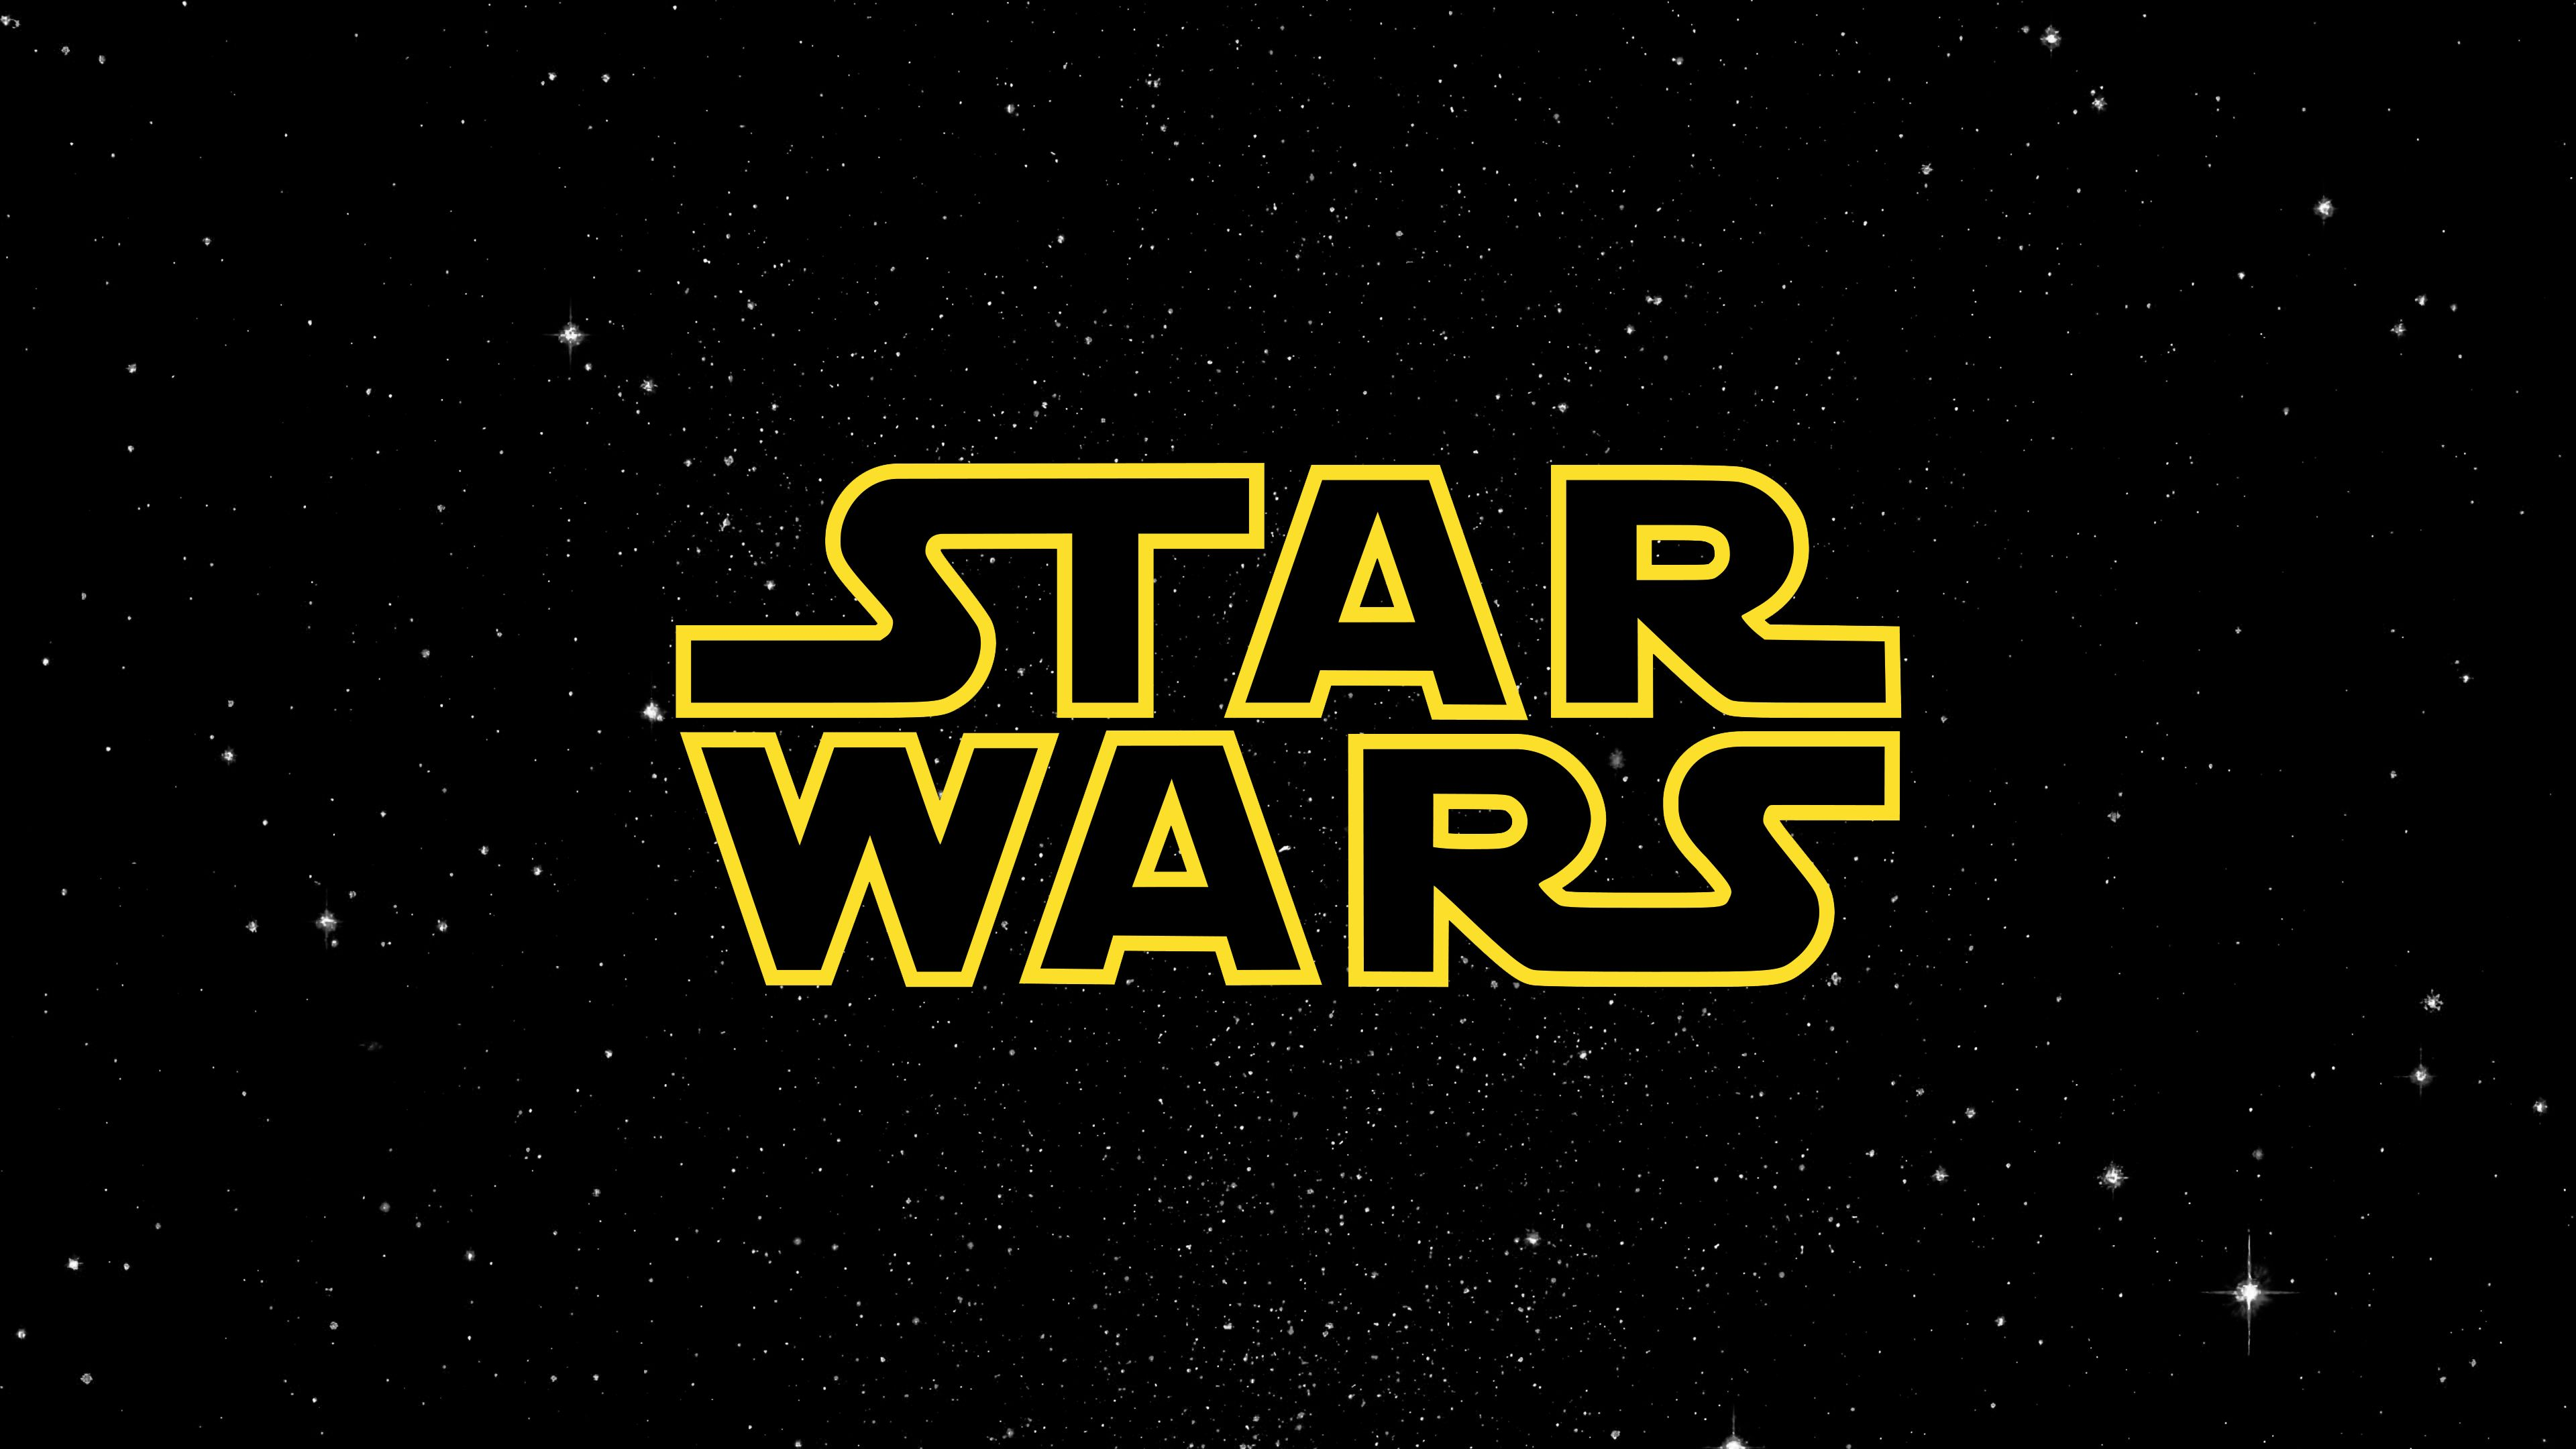 Wallpaper Star Wars Logo In 2020 Star Wars Wallpaper Star Wars Background Star Wars